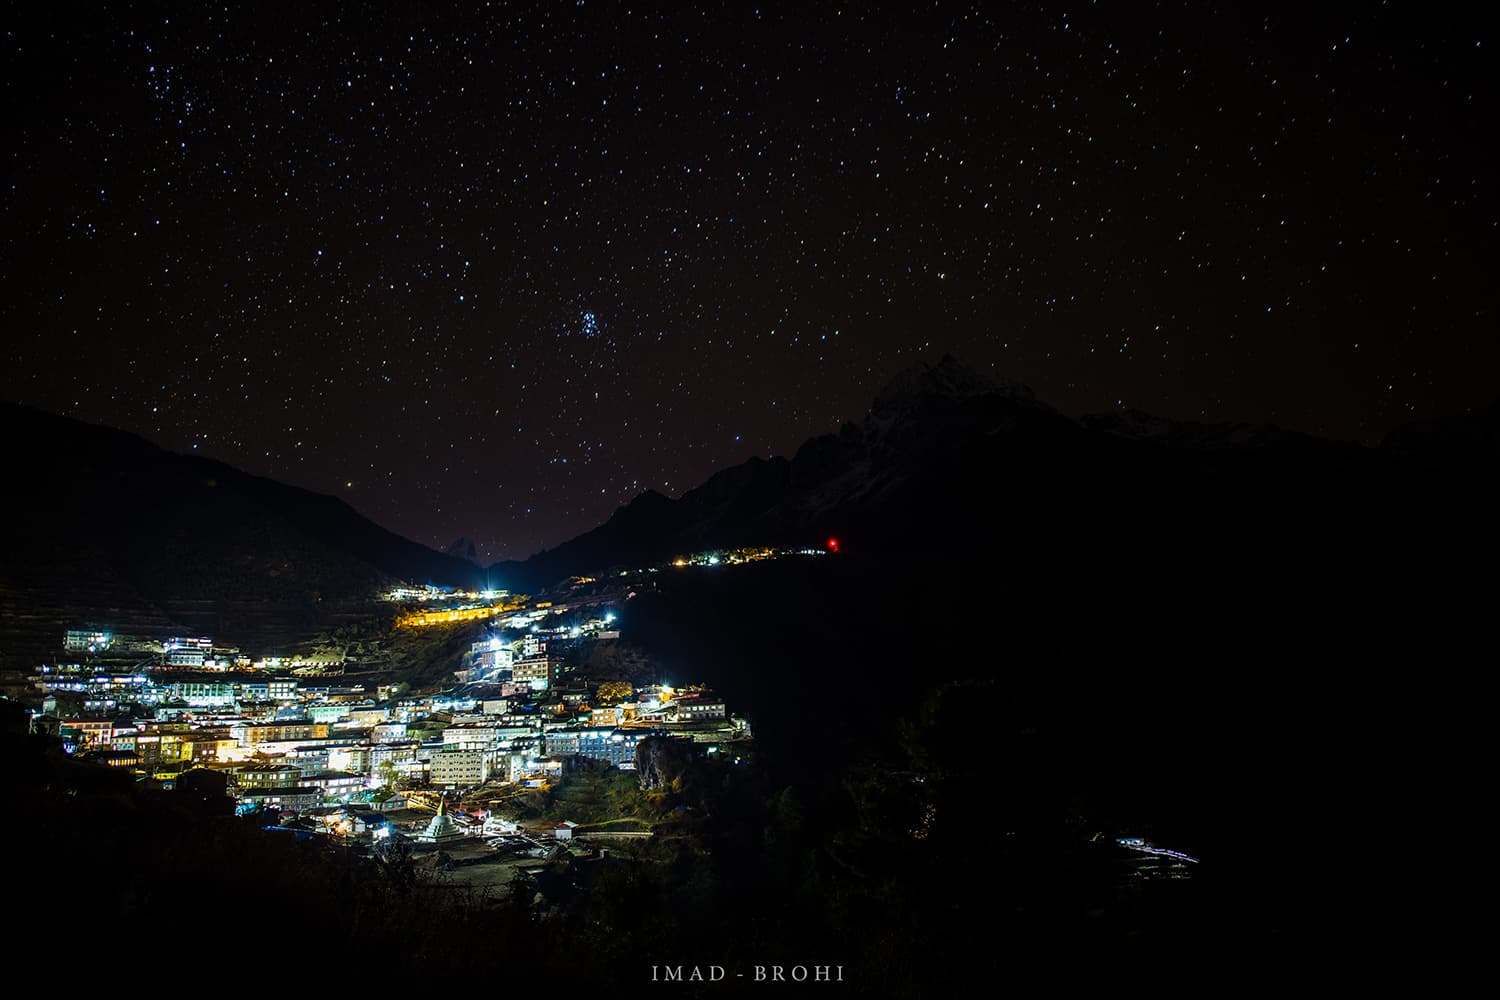 Day 3: Night falls on Namche Bazar.